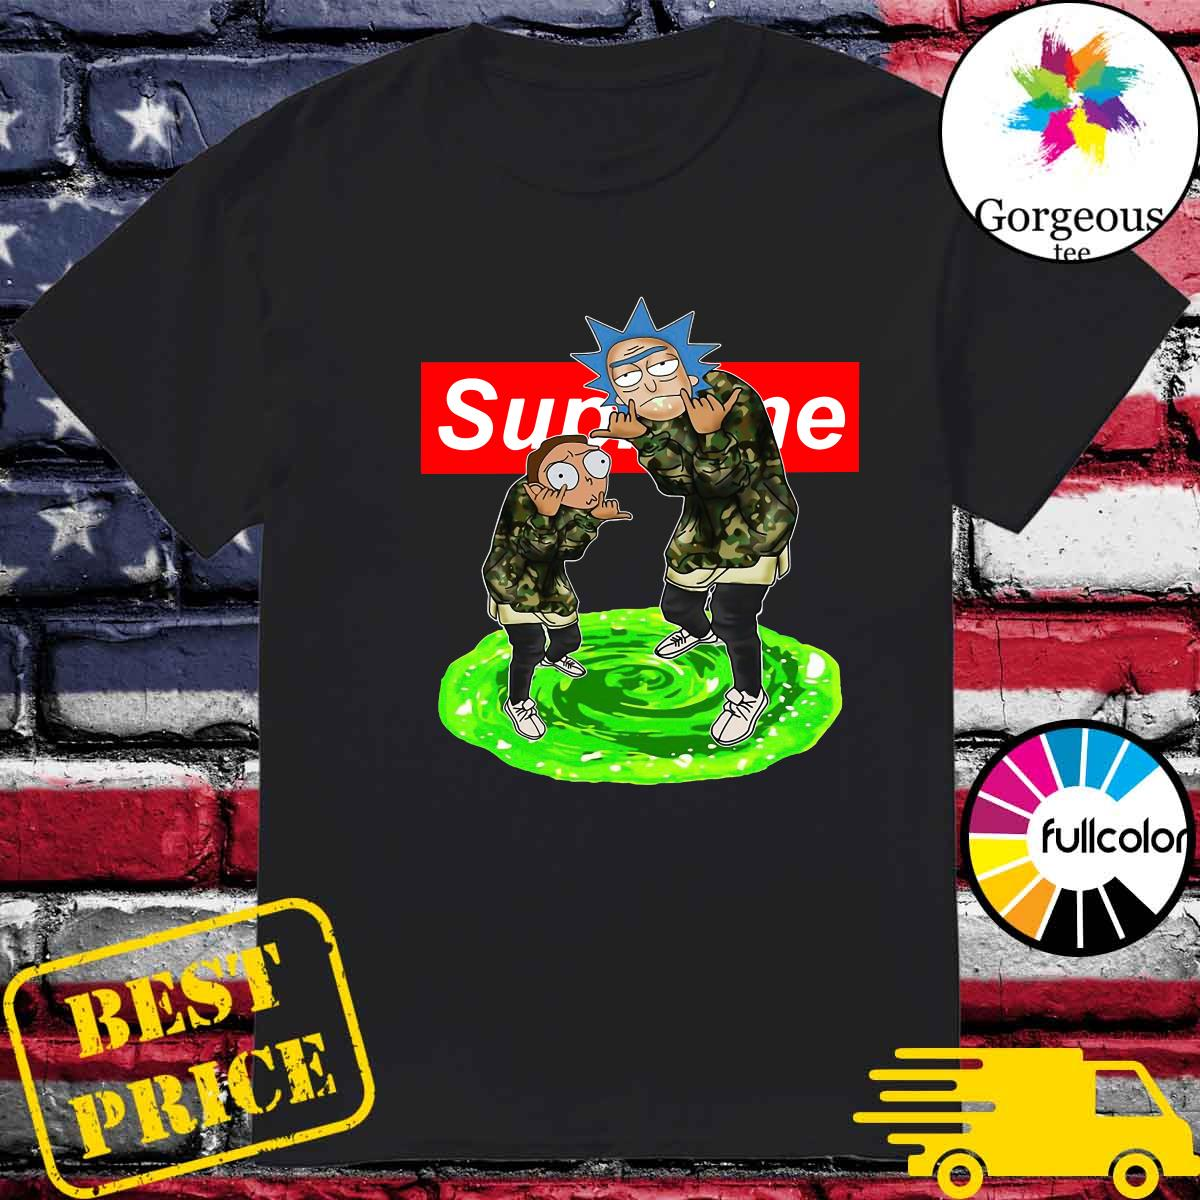 Supreme Logo With Rick And Morty 2021 Shirt